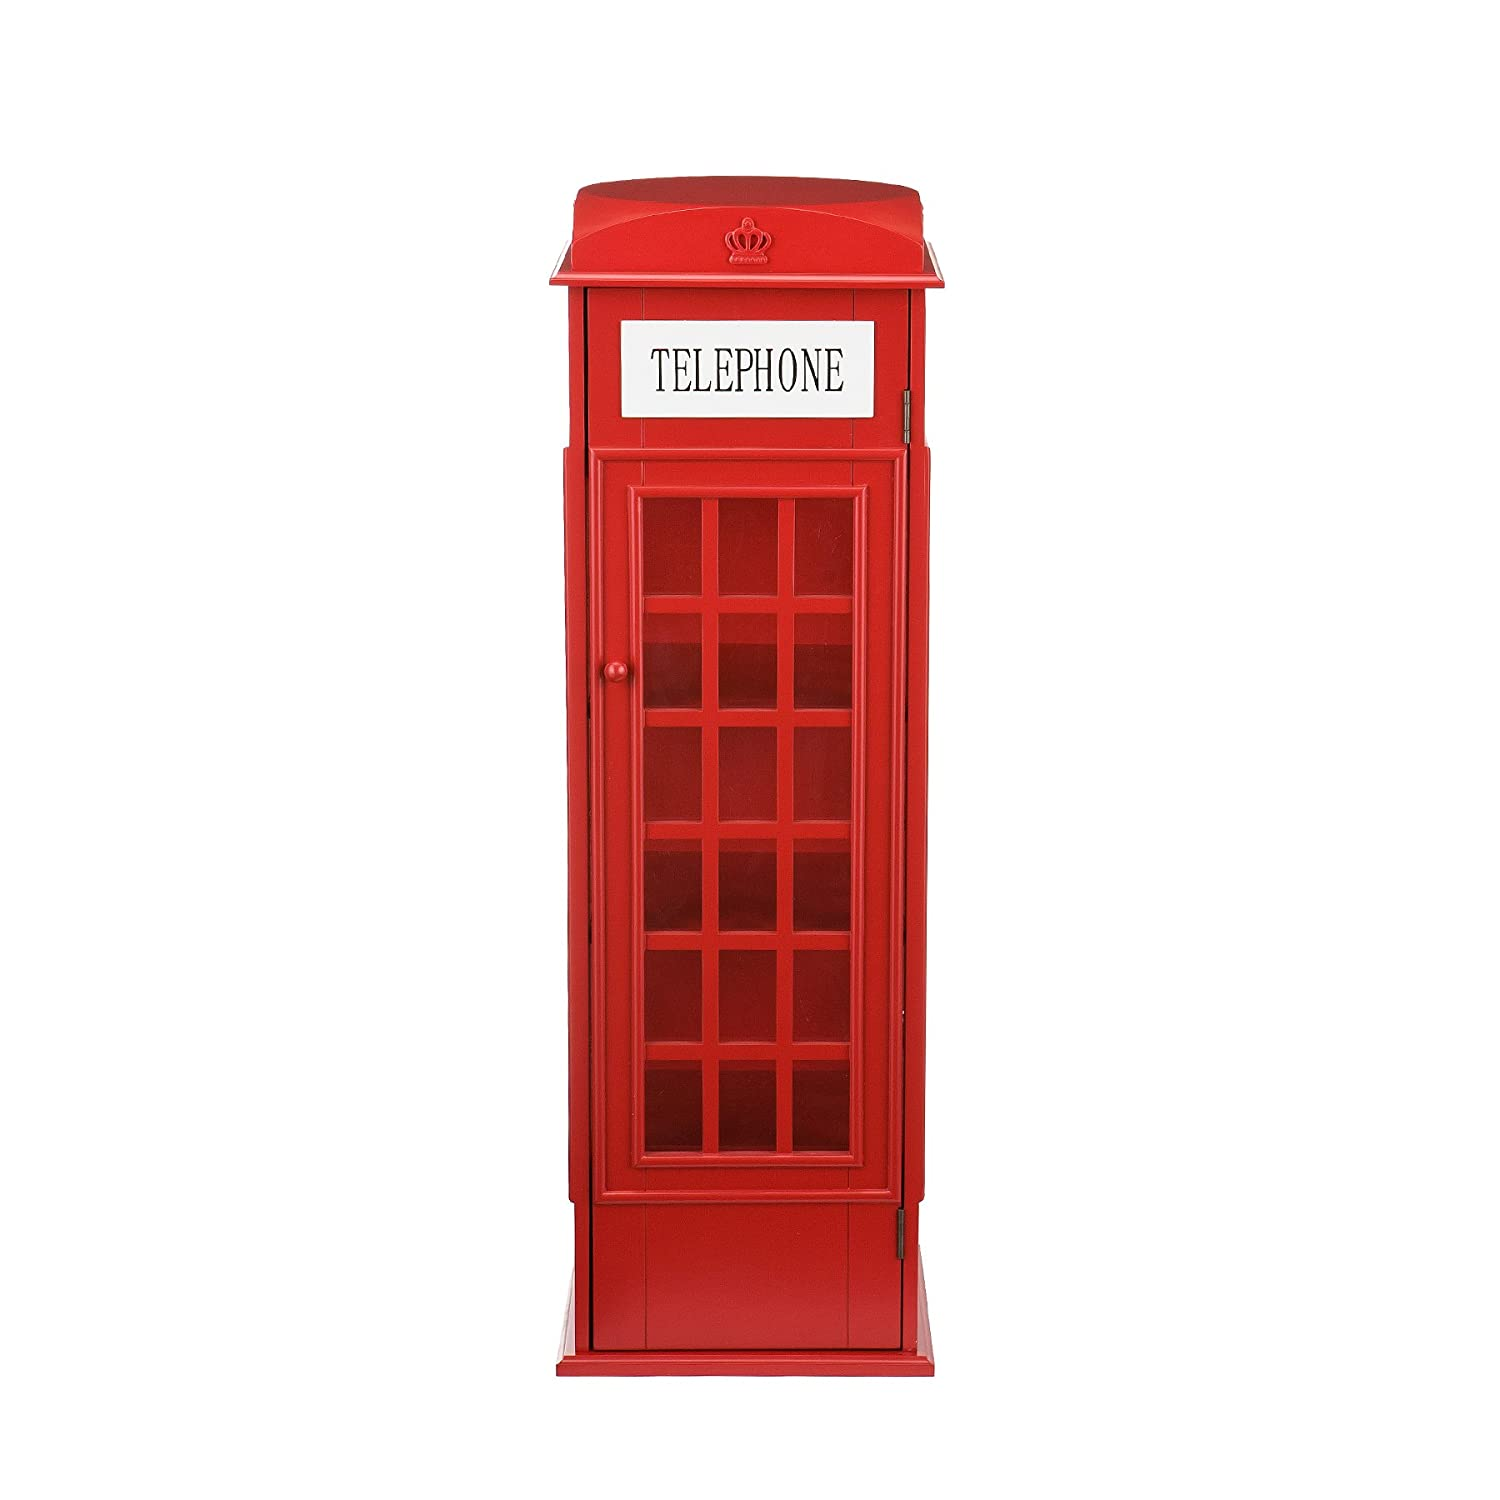 Wood Phone Booth Cabinet, Red: Amazon.co.uk: Kitchen & Home